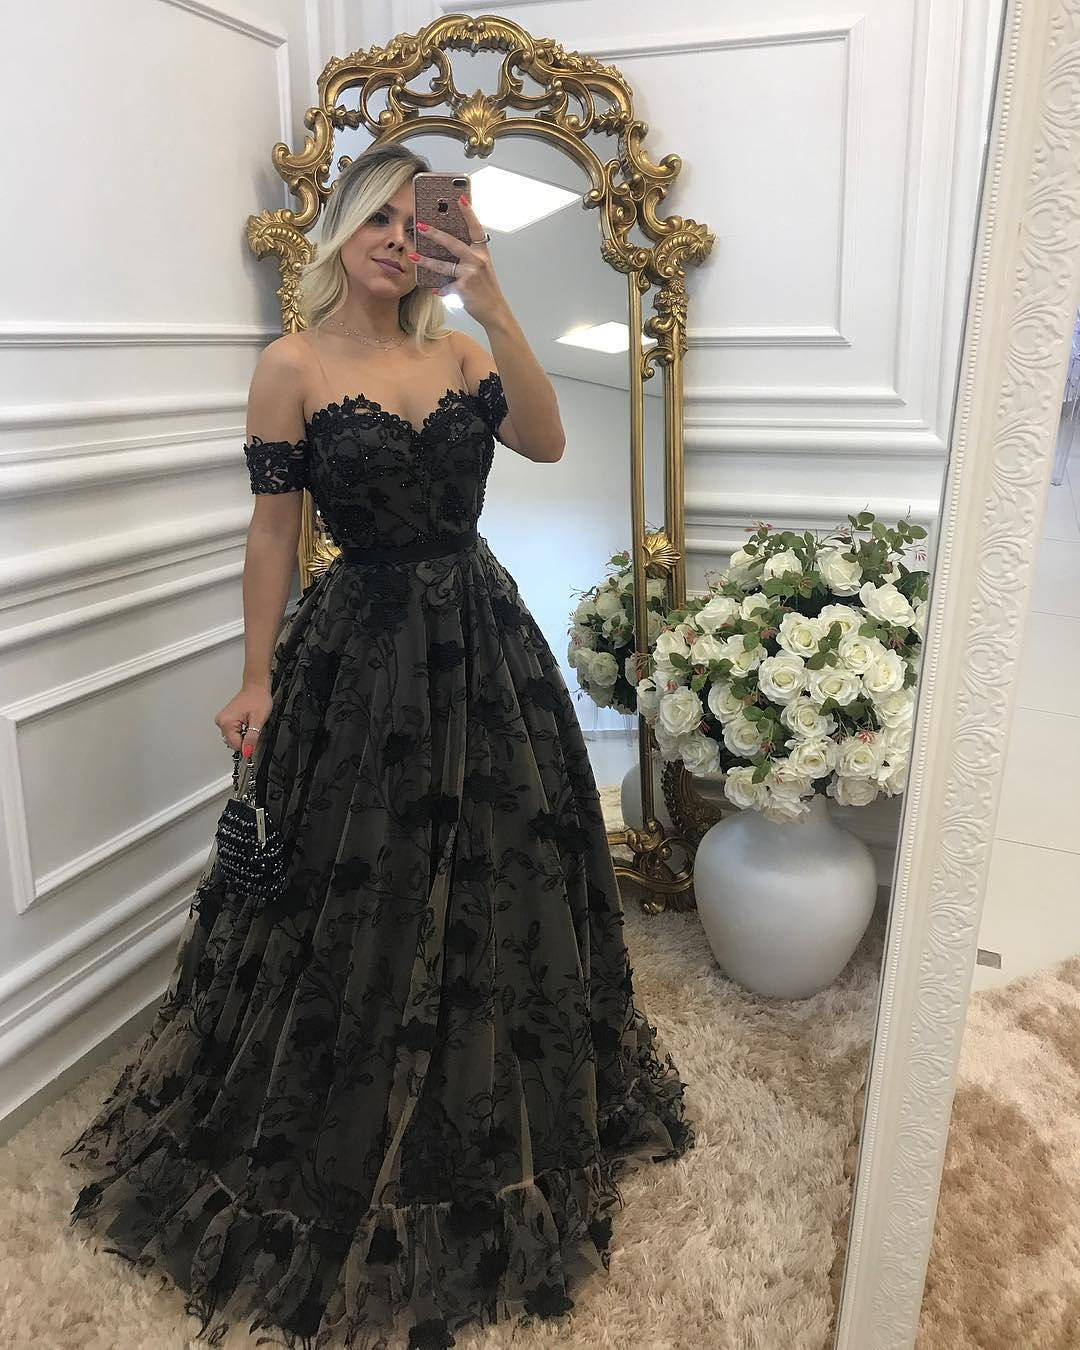 f42bdb01bbd4 Custom Made Black Off-Shoulder Lace Floor Length Bridesmaid Dress with  Rhinestone Beading, Prom